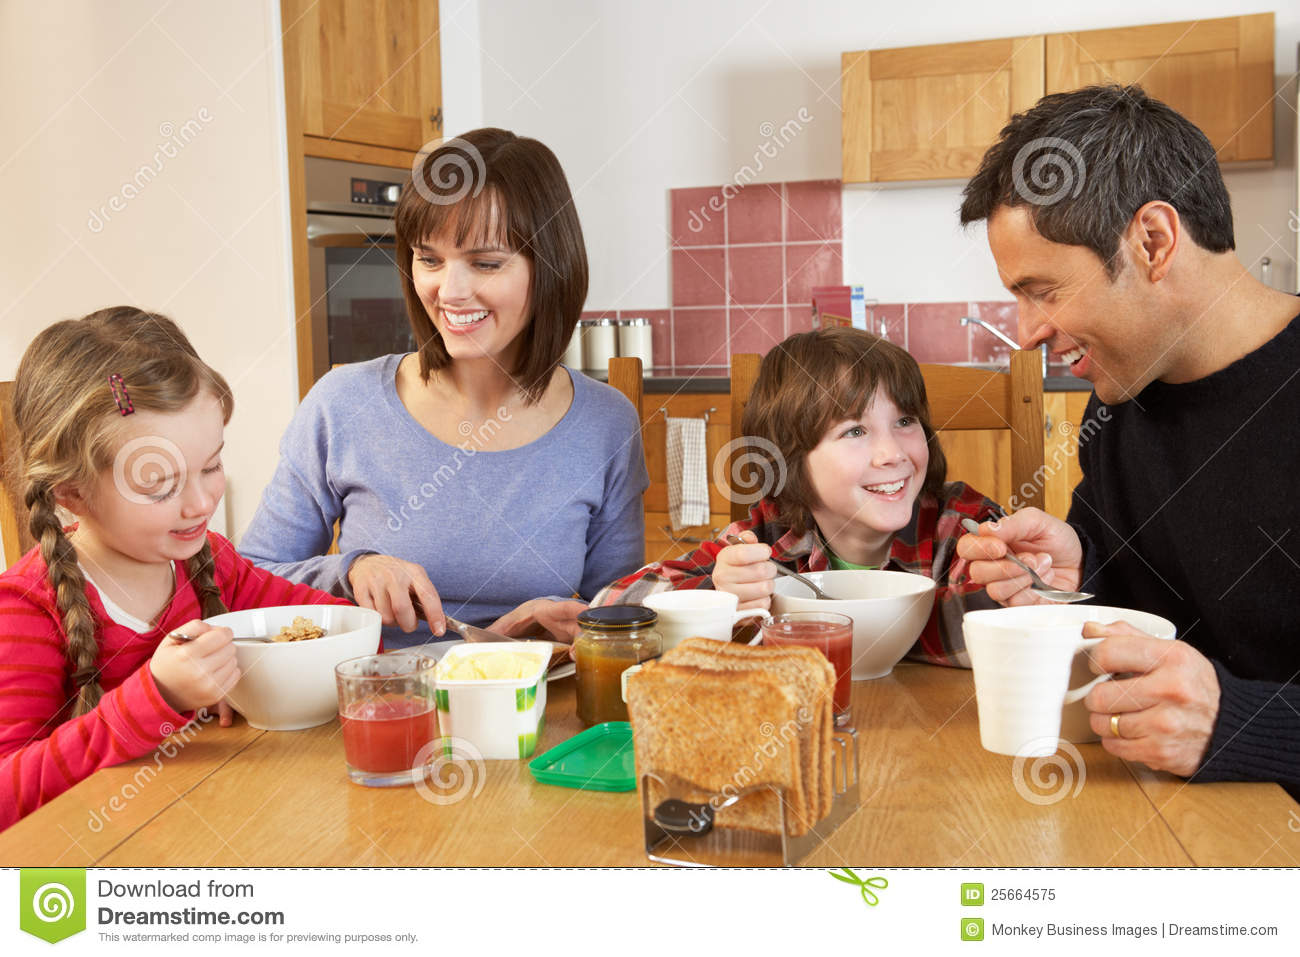 Family Eating Breakfast Together In Kitchen Royalty Free